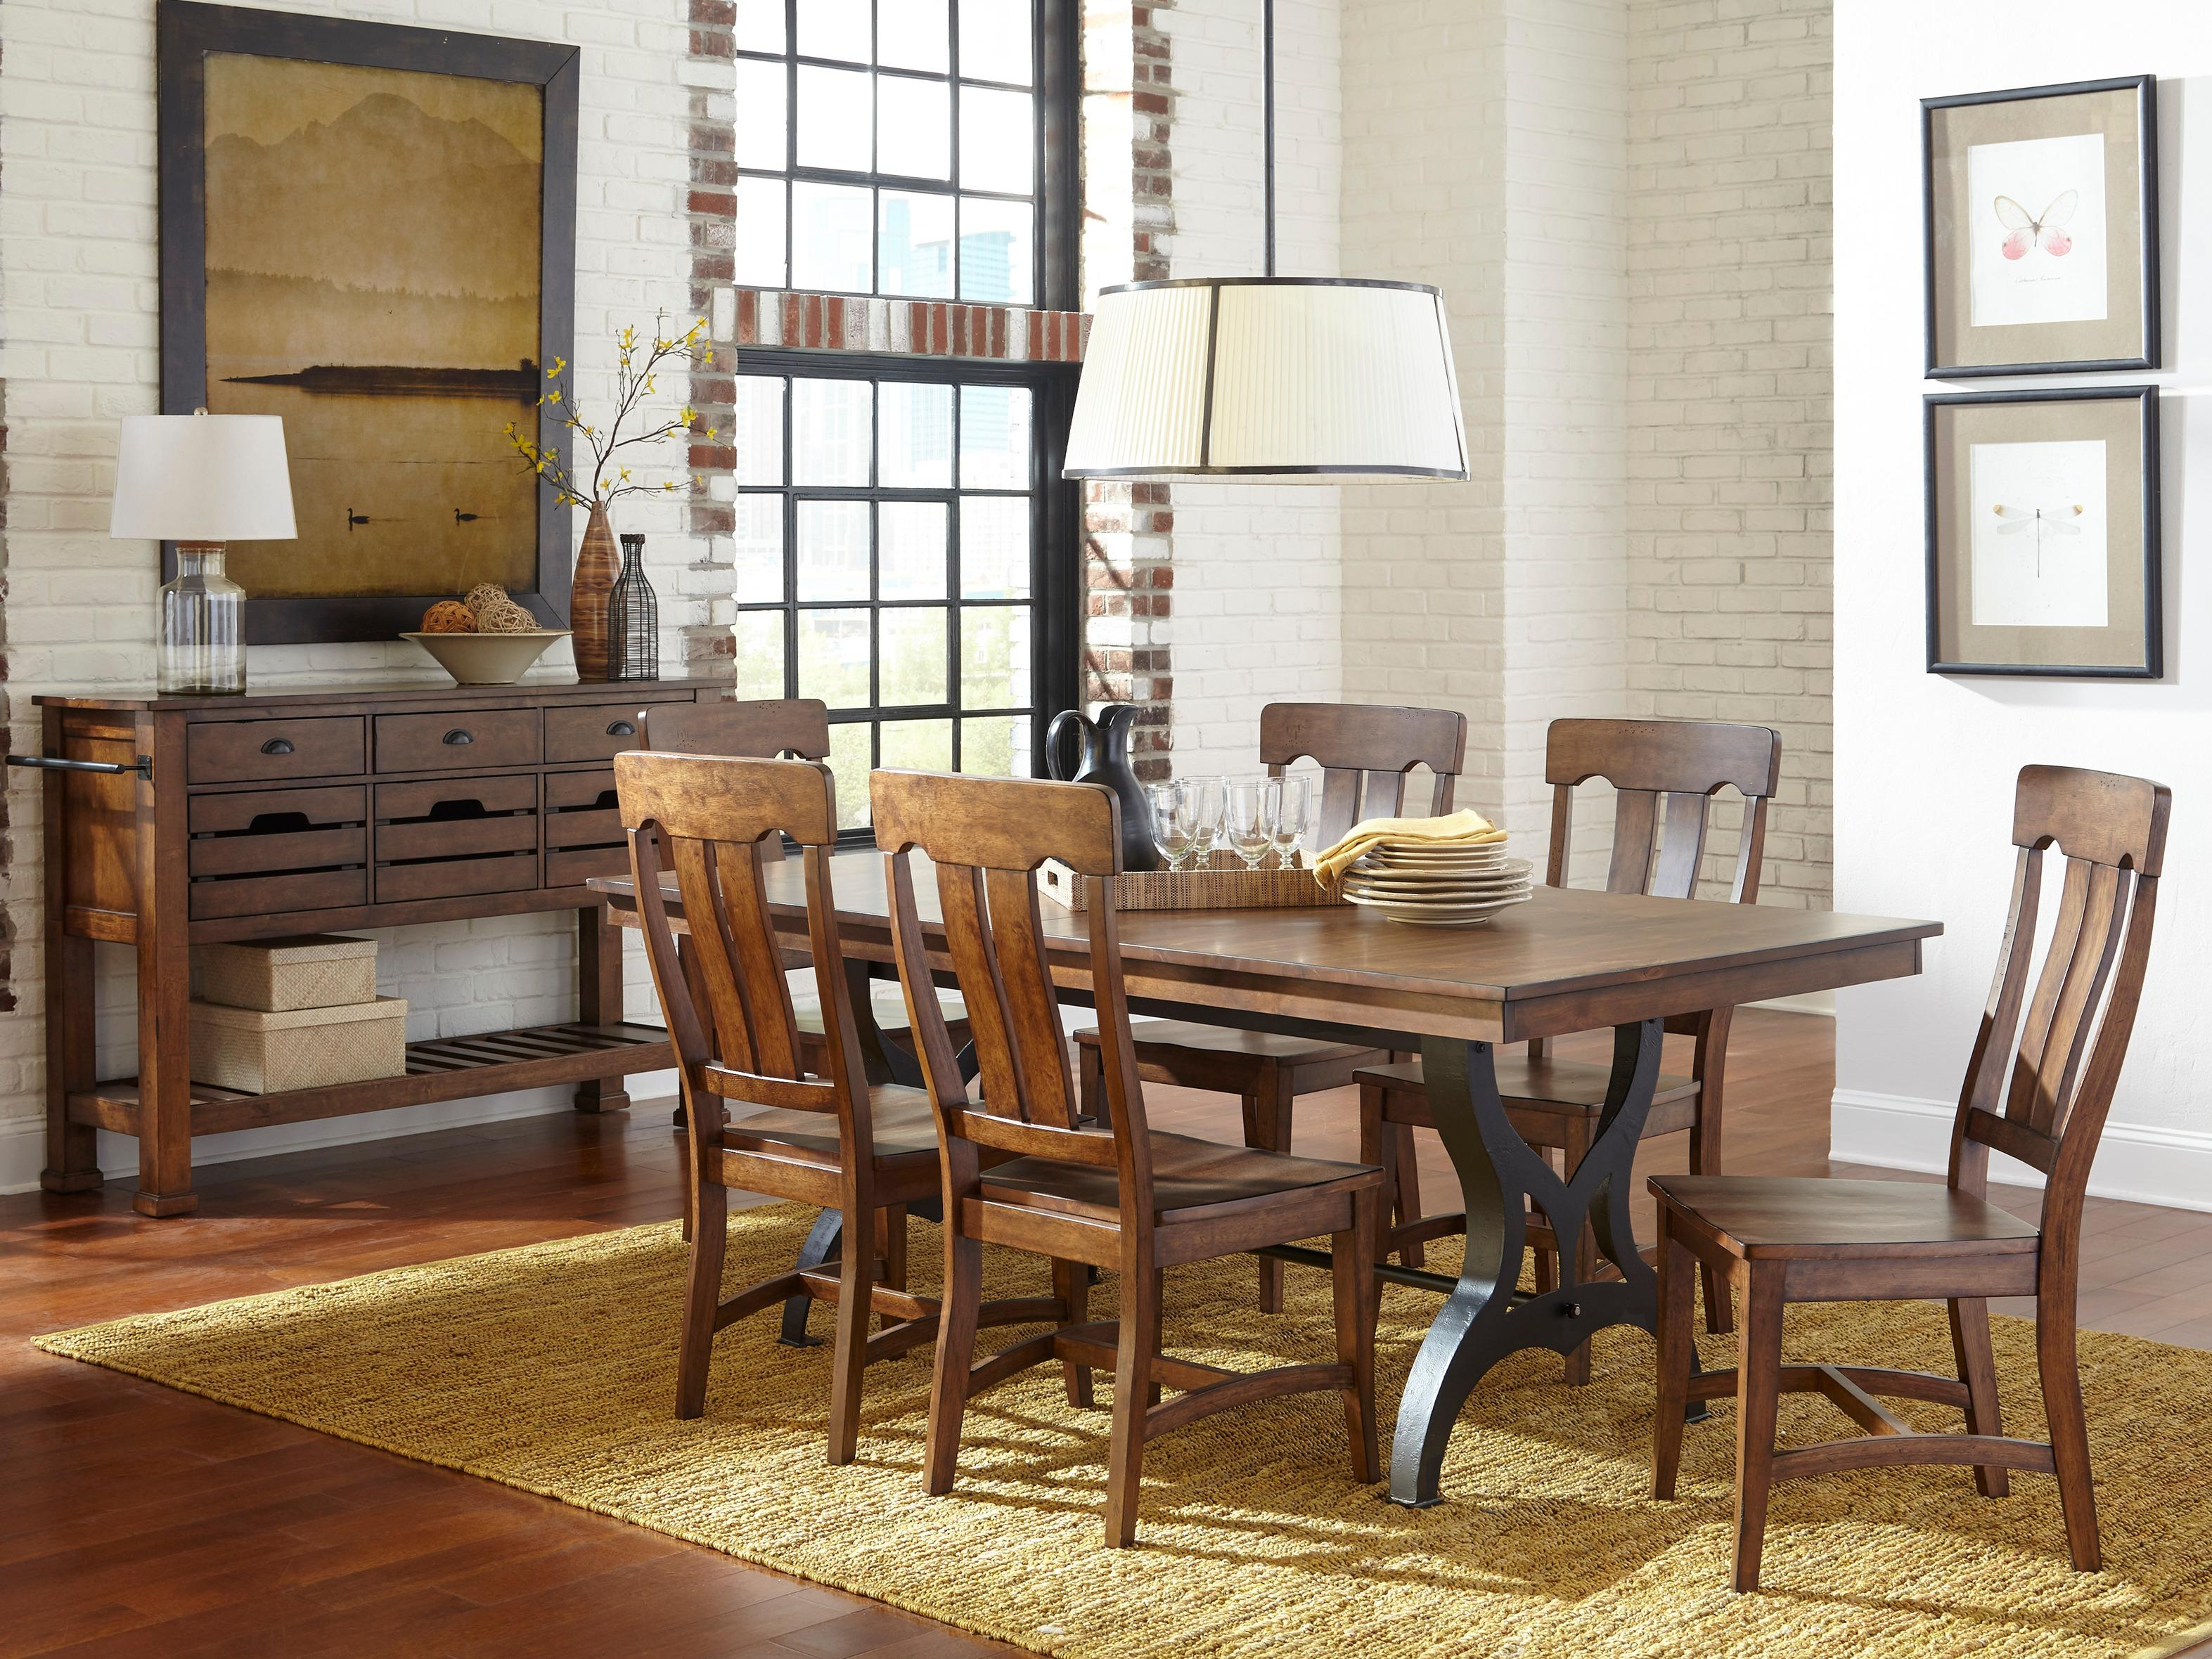 Local Furniture Stores Near Me